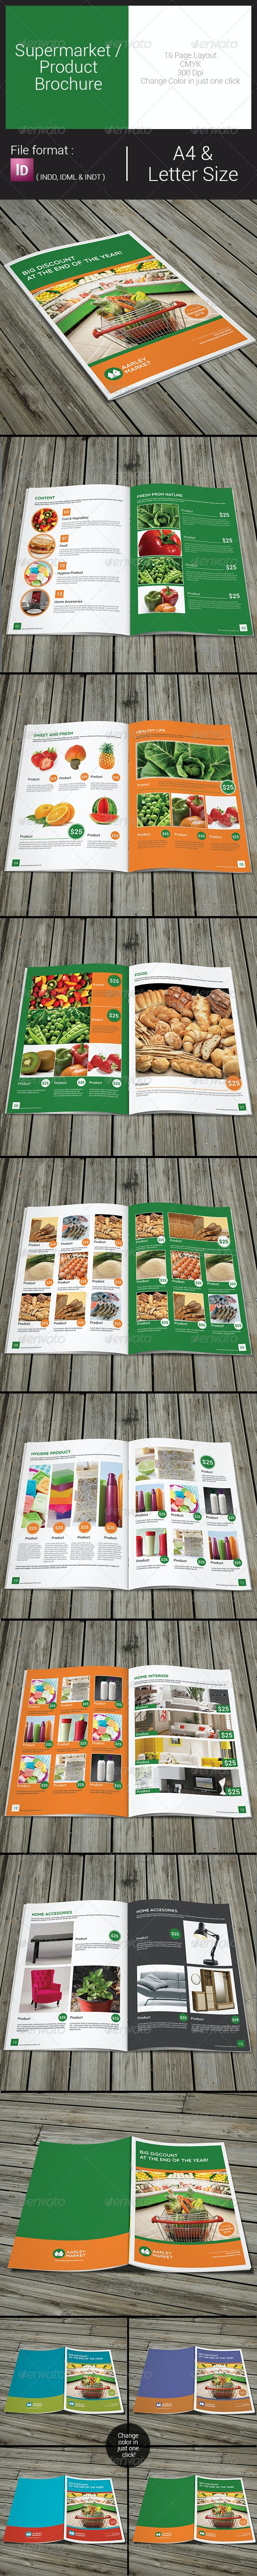 Supermarket / Product Brochure - Catalogs Brochures